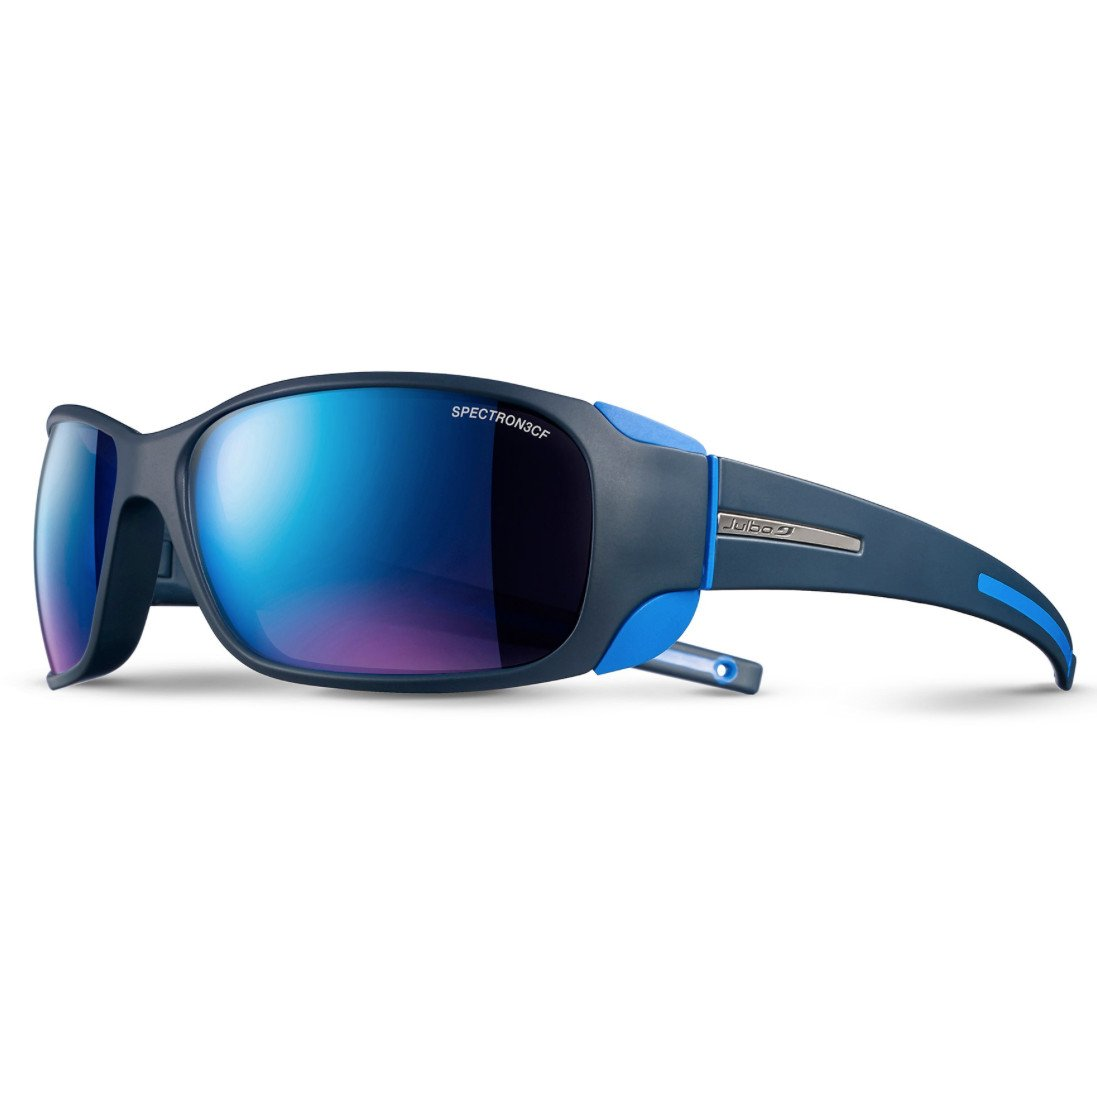 Julbo Montebianco Sprectron 3CF, in Dark Blue colour shown front/side on